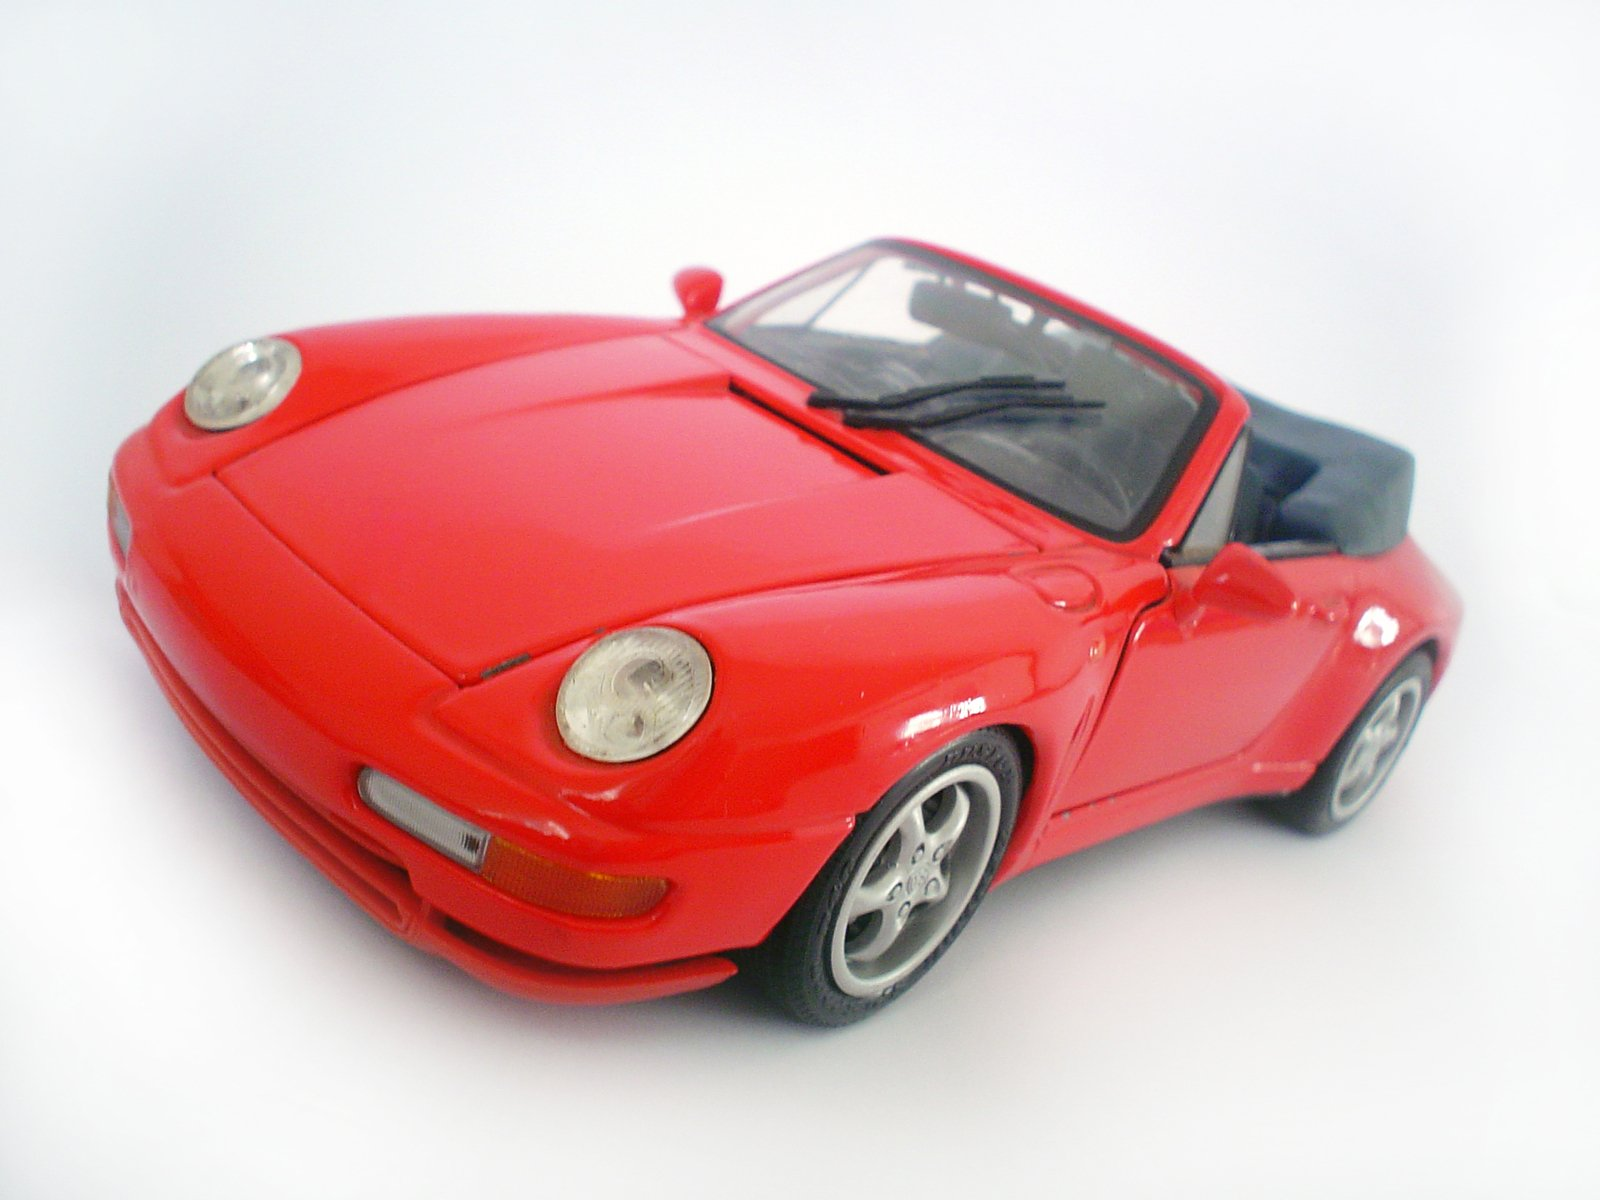 Toy car - Red